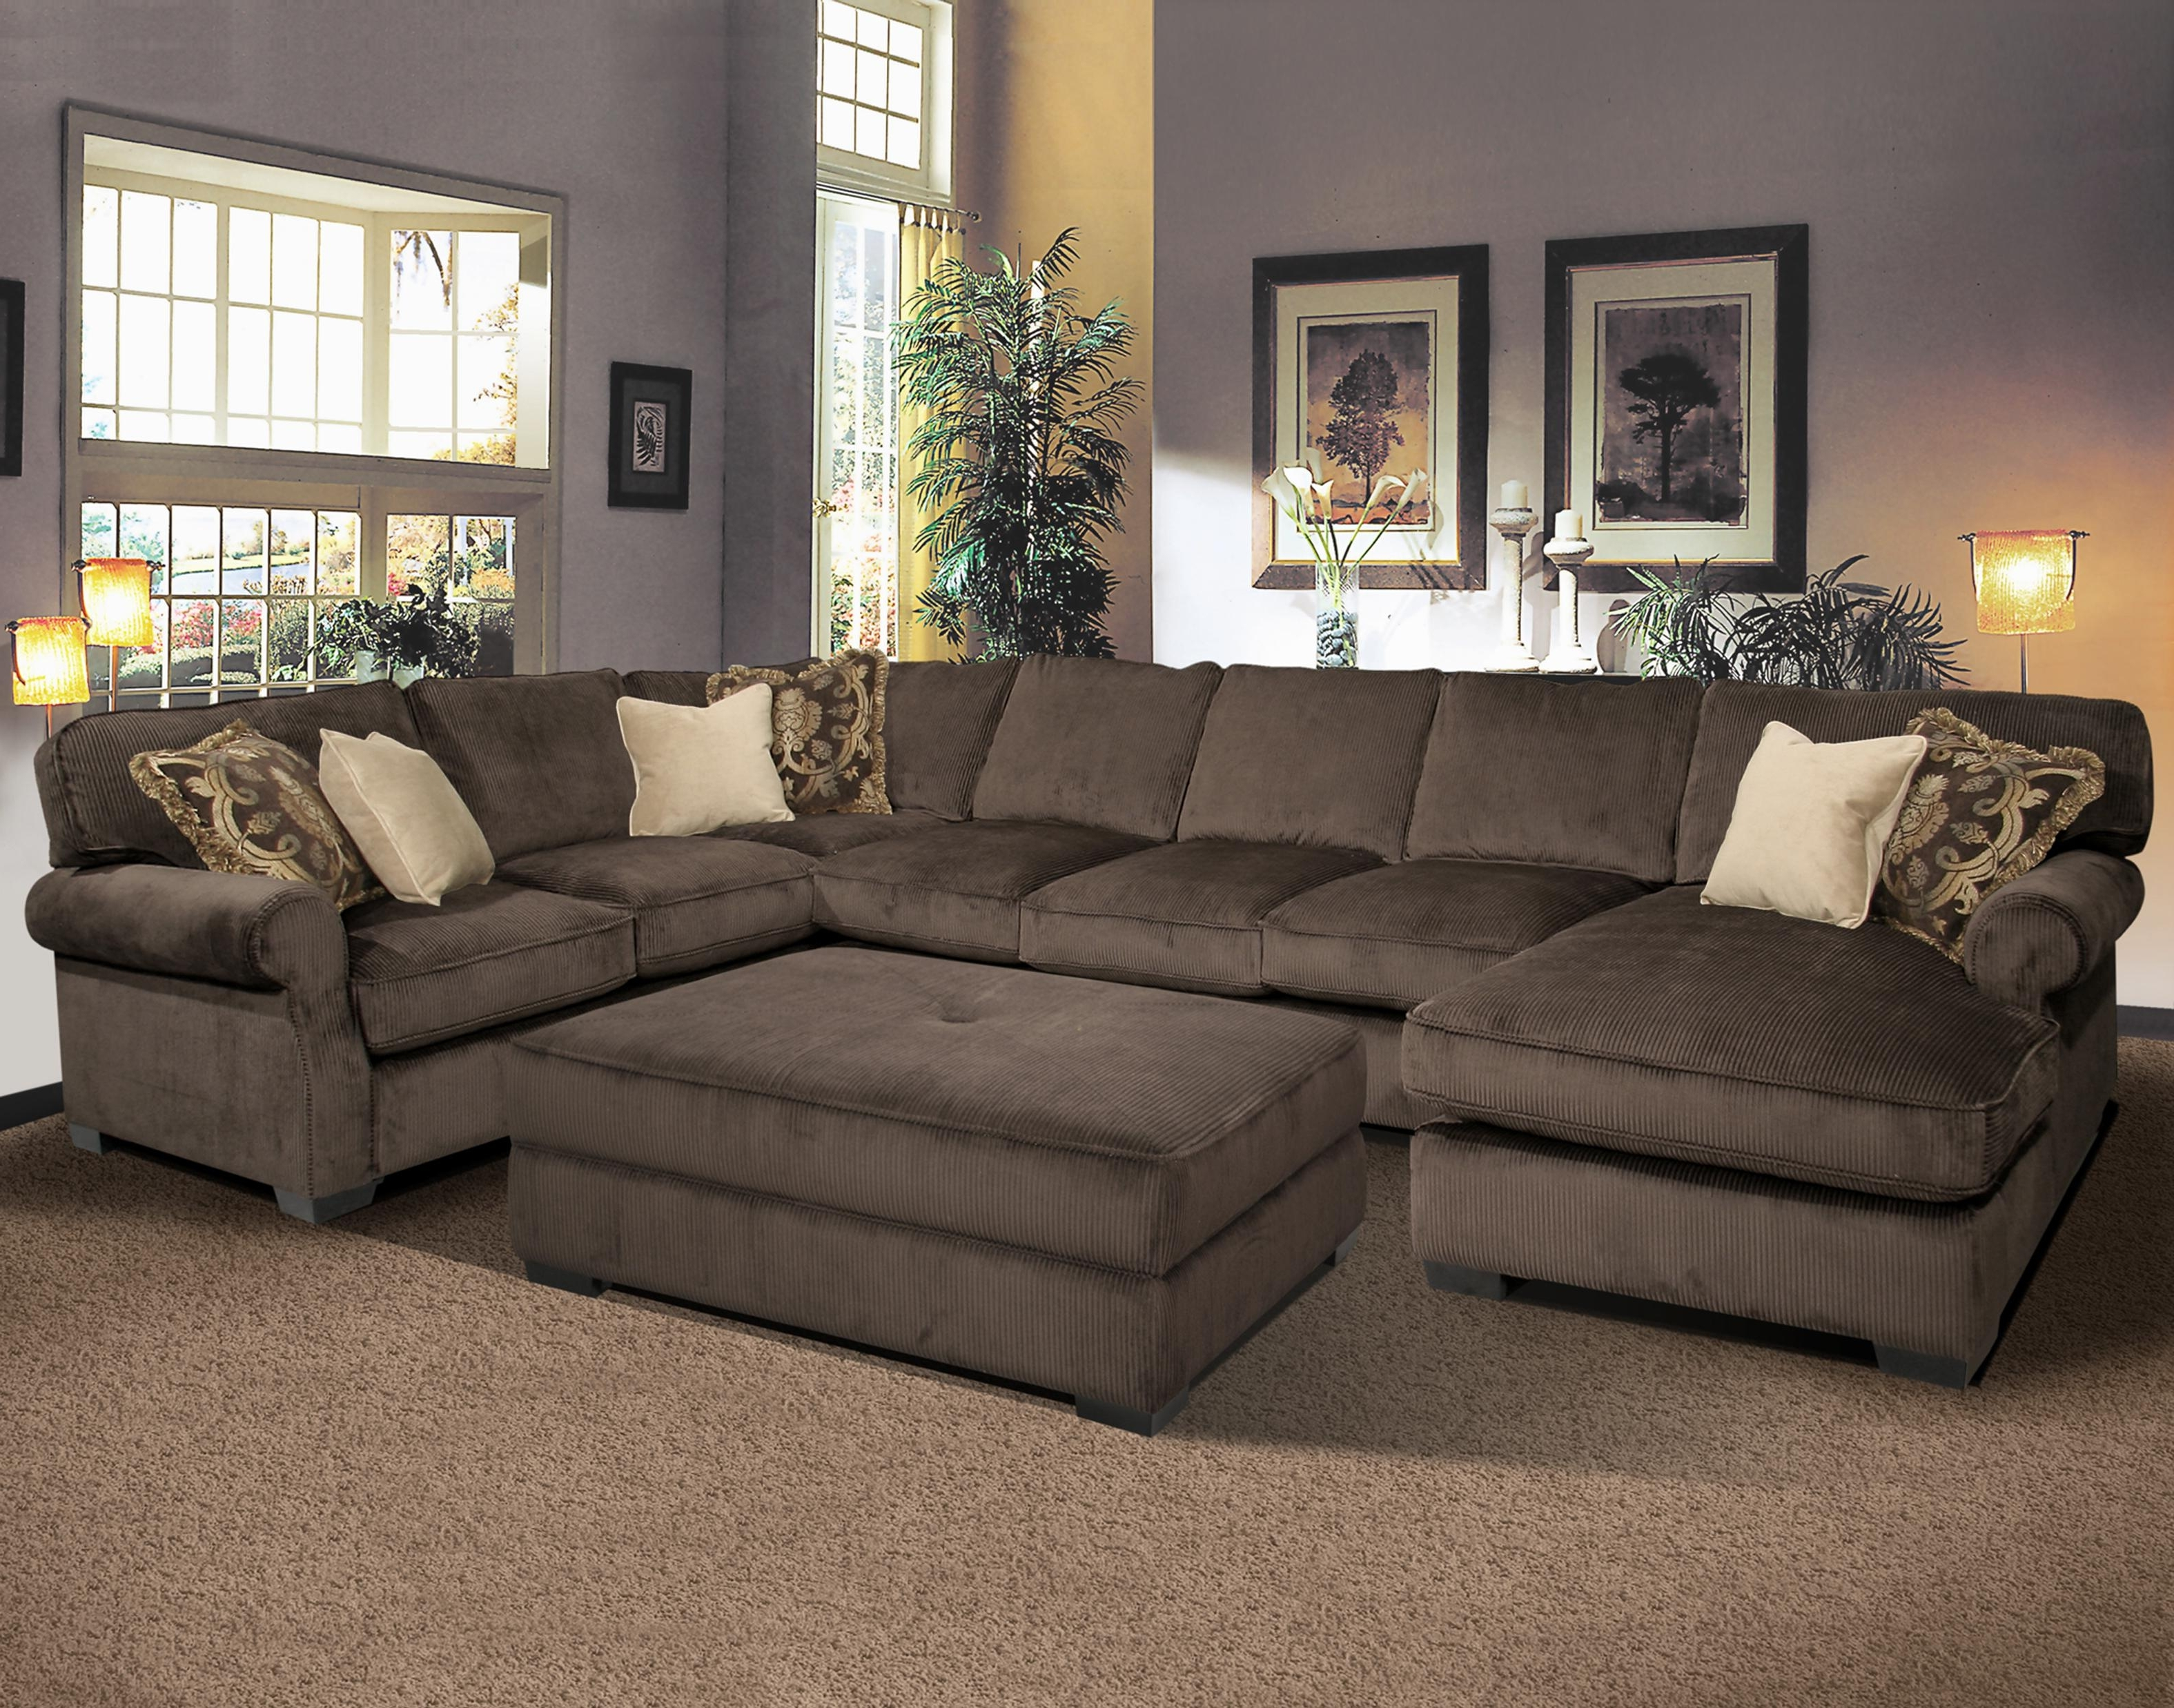 Ashley Furniture Evansville With Regard To Jacksonville Nc Sectional Sofas (View 3 of 20)